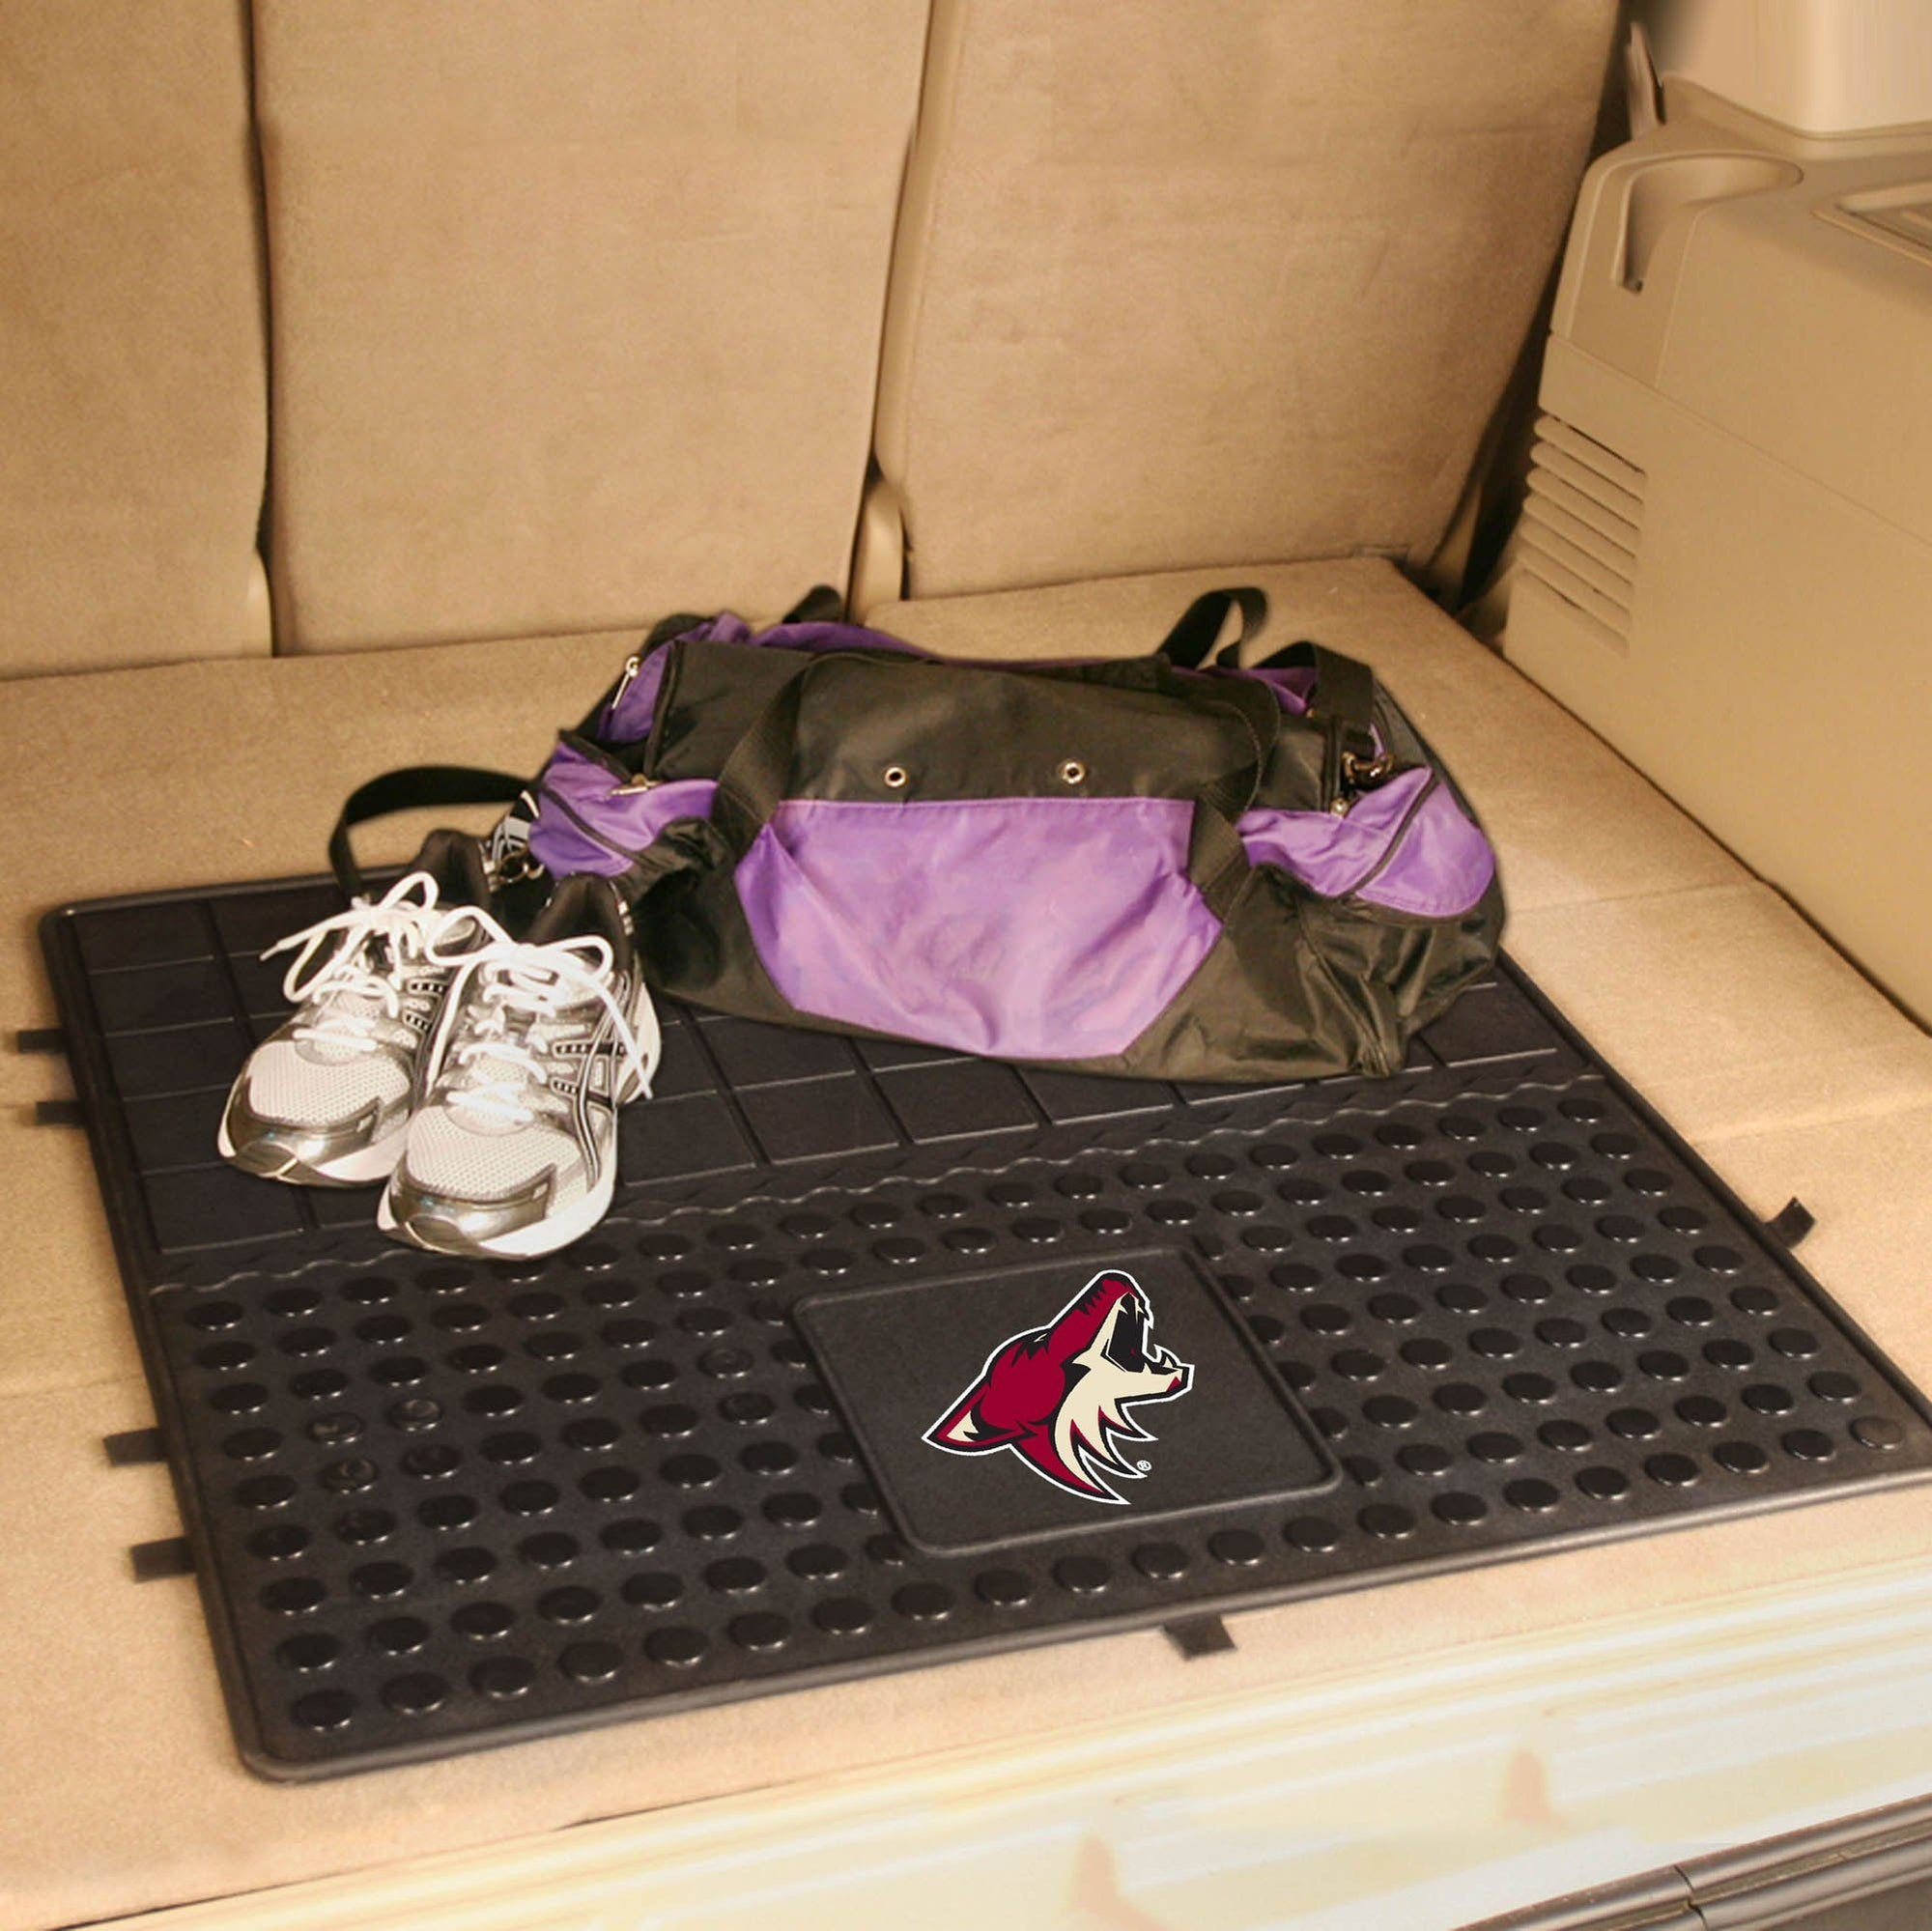 NHL - Heavy Duty Vinyl Cargo Mat NHL Mats, Trunk Mats, Heavy Duty Vinyl Cargo Mat, NHL, Auto Fan Mats Anaheim Ducks